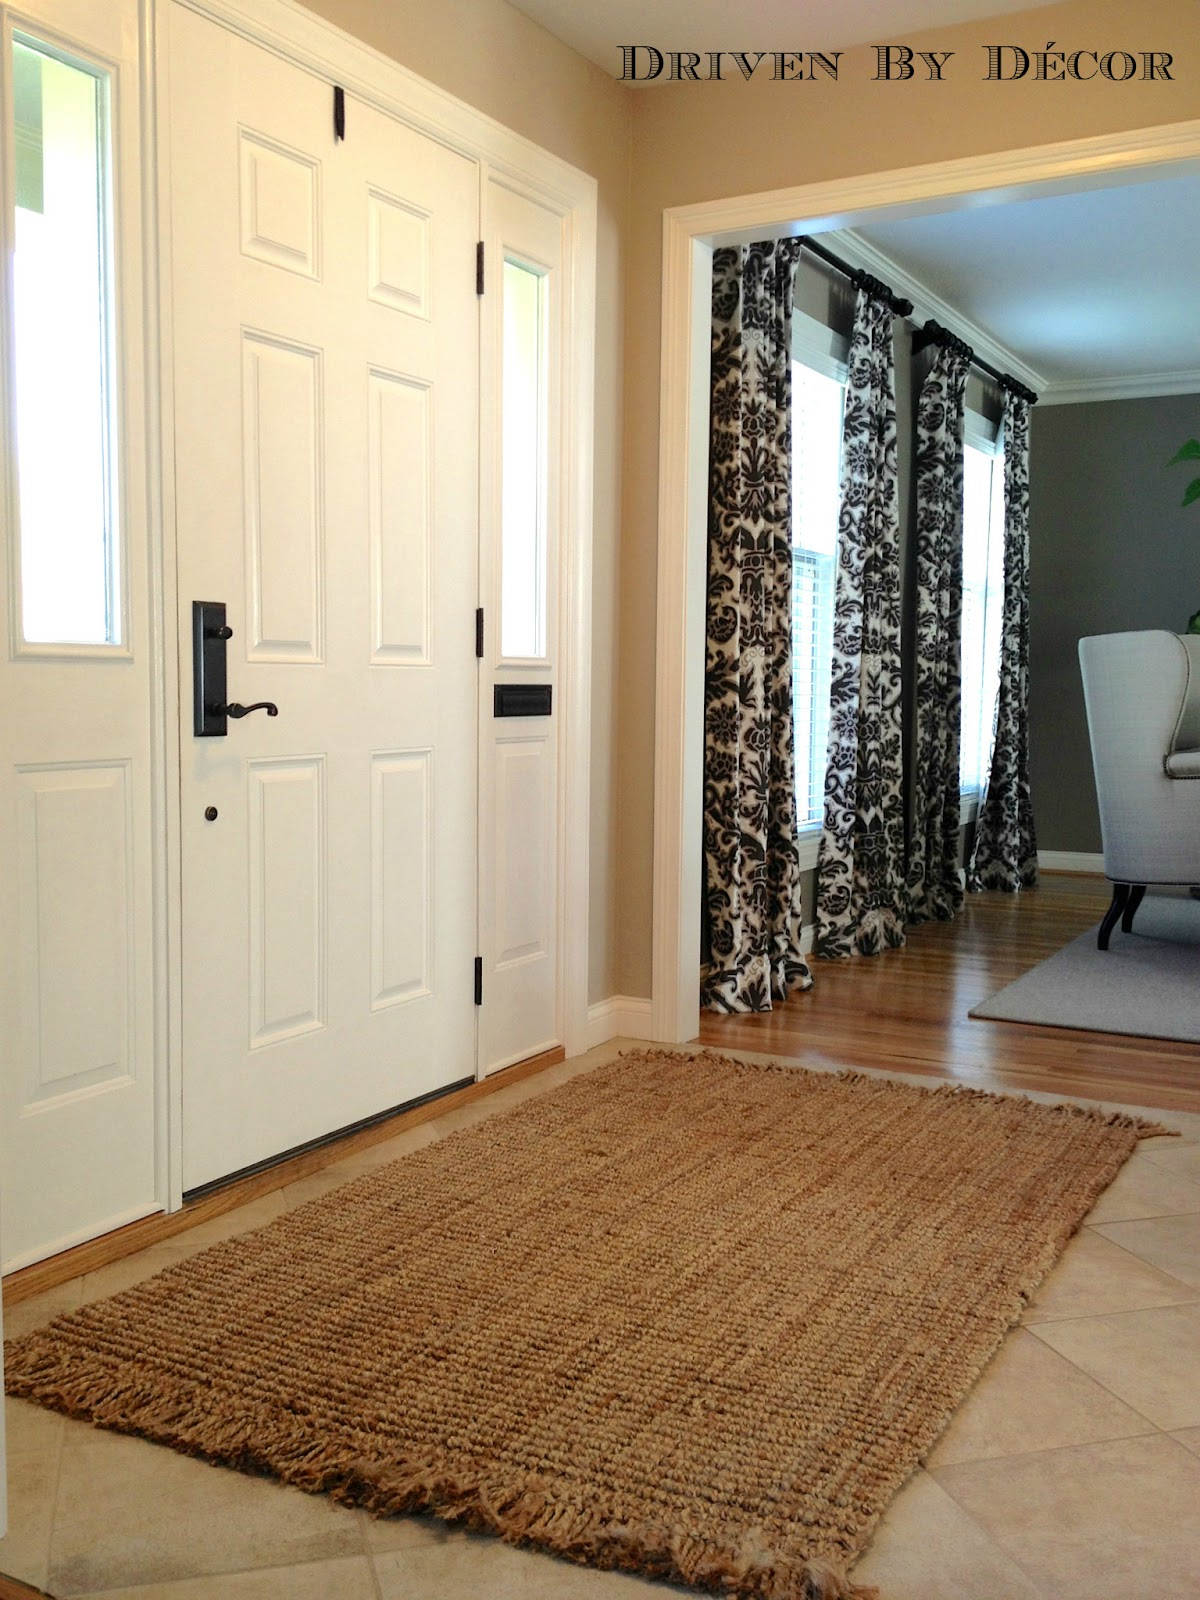 Foyer Rugs Images : A great online source for inexpensive area rugs driven